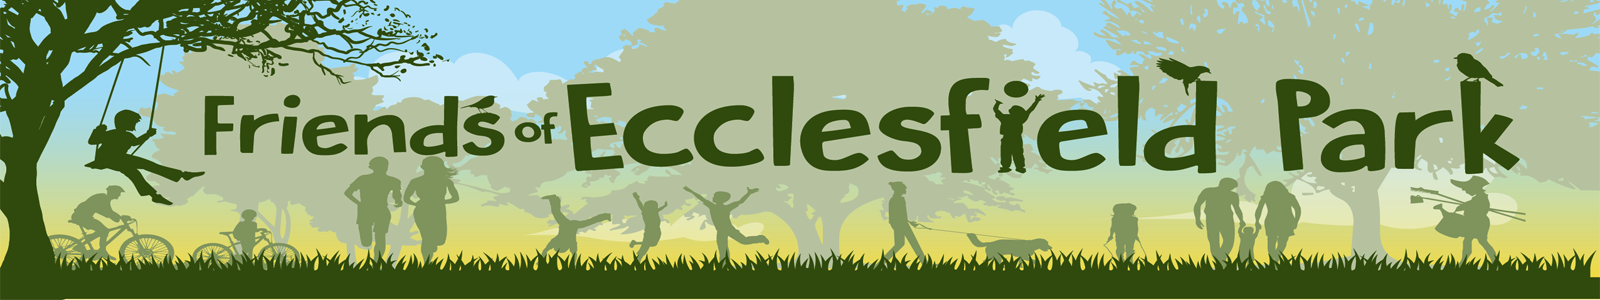 Friends of Ecclesfield Park Header